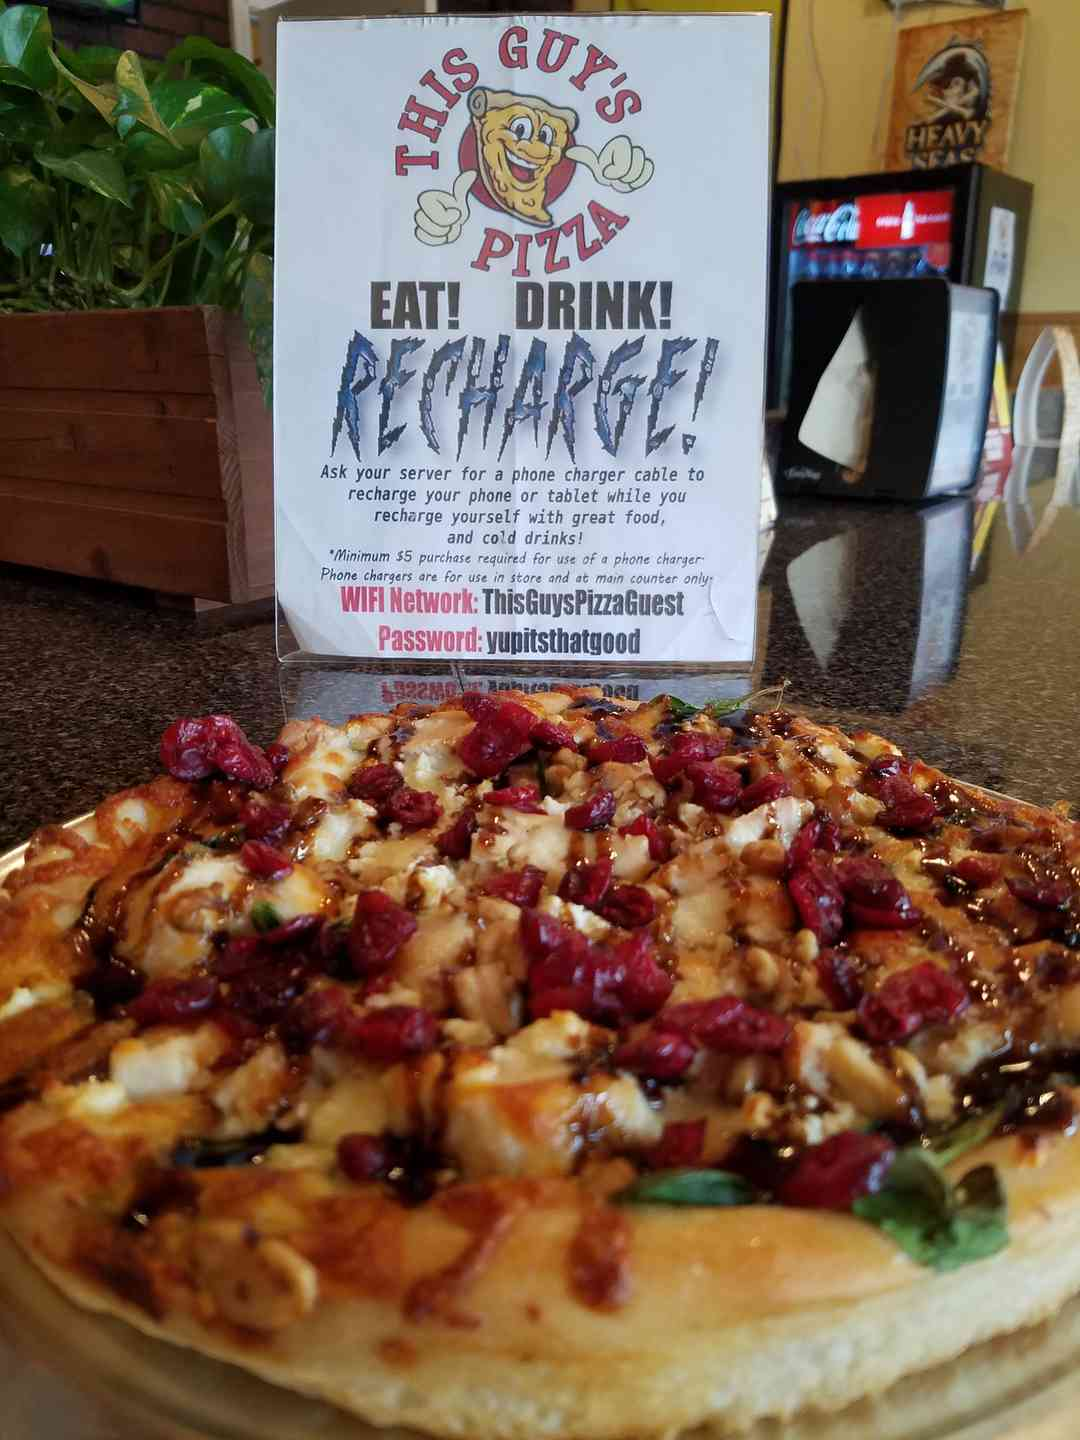 The Cranberry Walnut Pizza